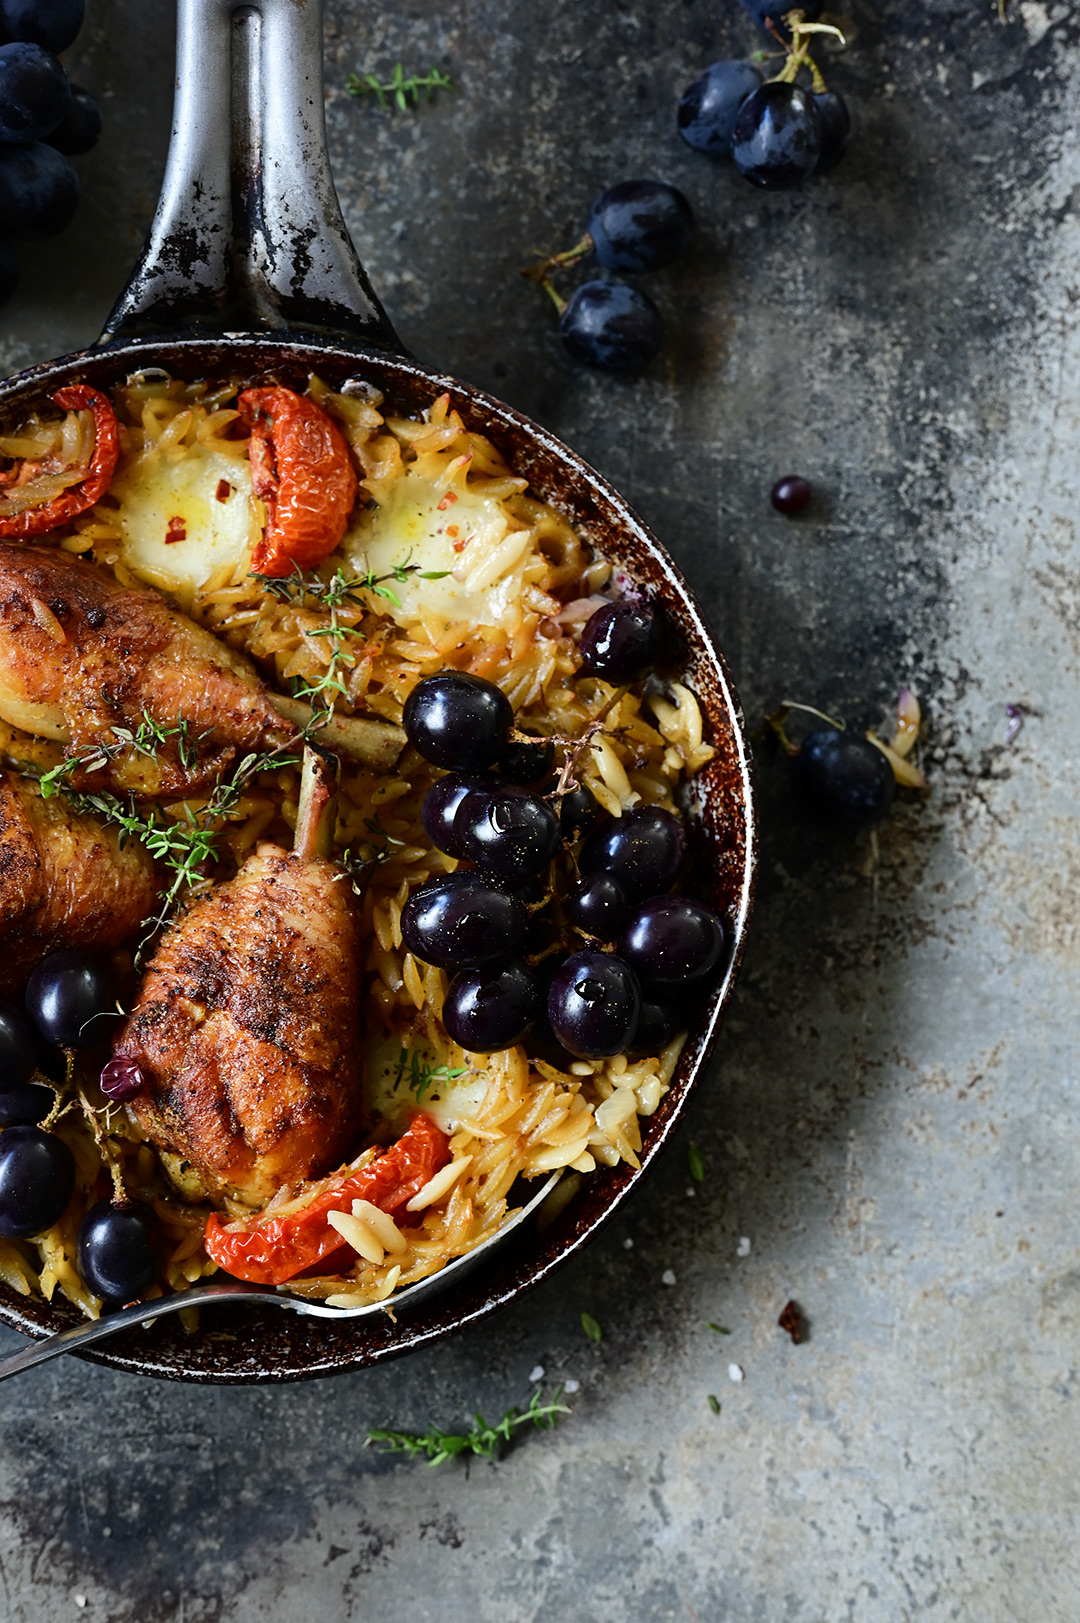 serving dumplings | Roasted chicken with grapes and orzo